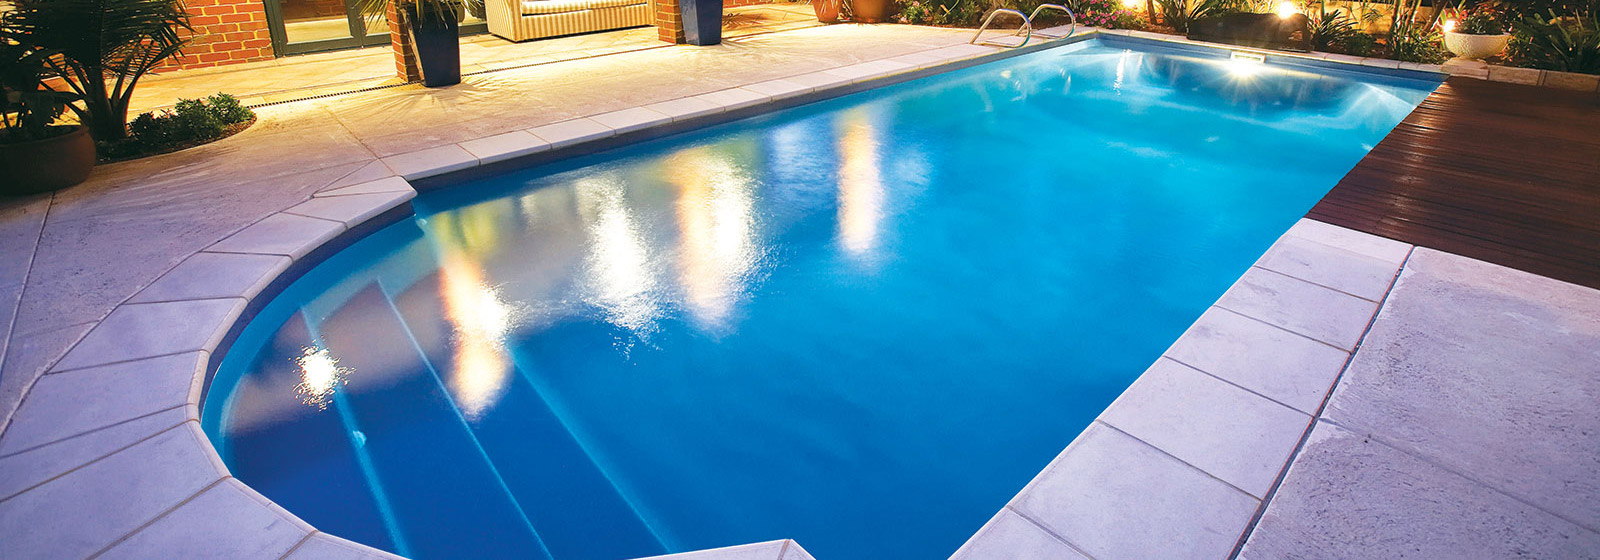 Swimming pools with slides perth creativity for Pool show 2015 perth